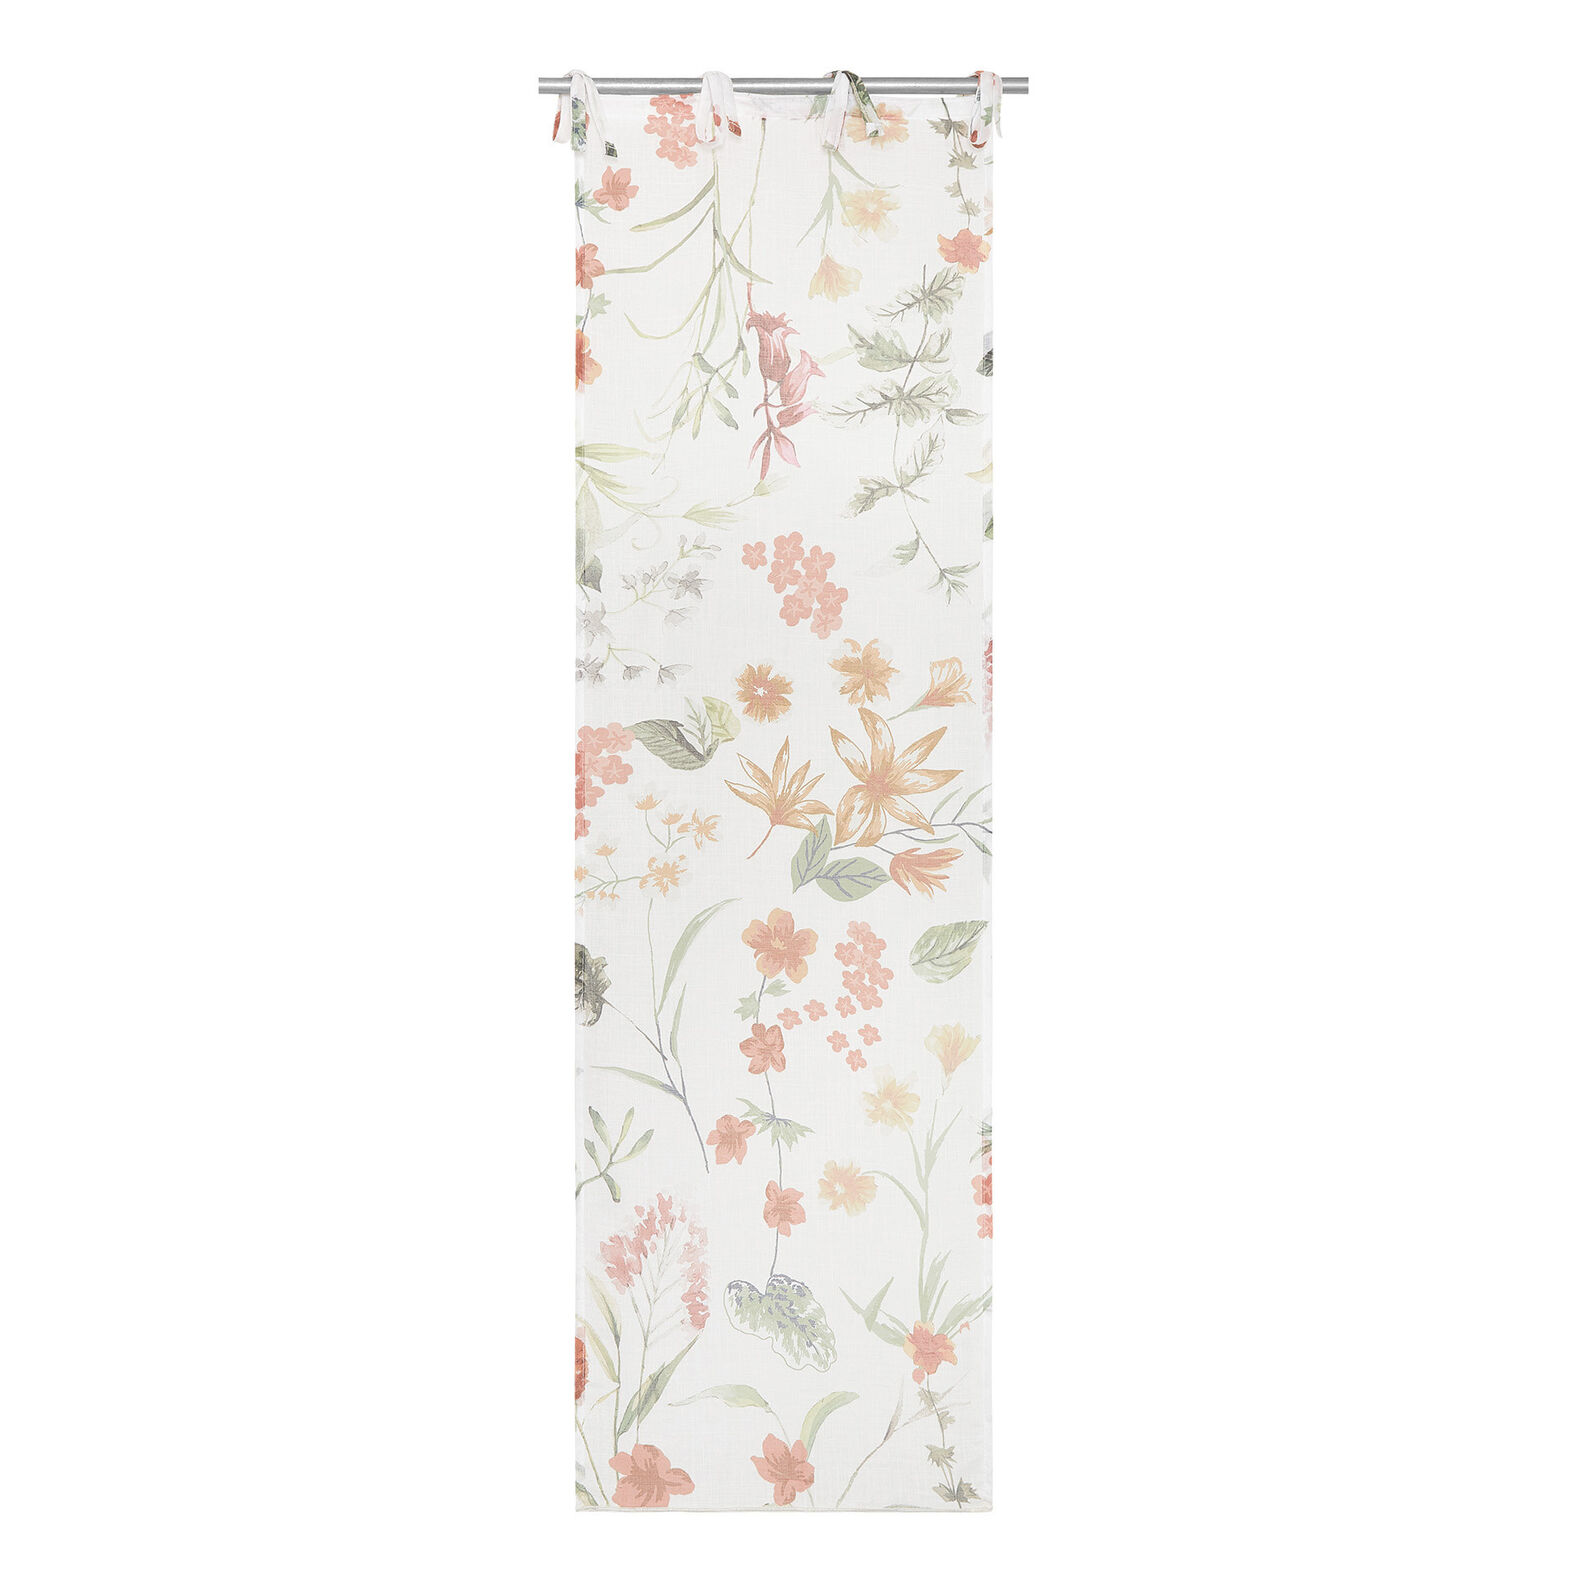 Small floral motif curtain with laces